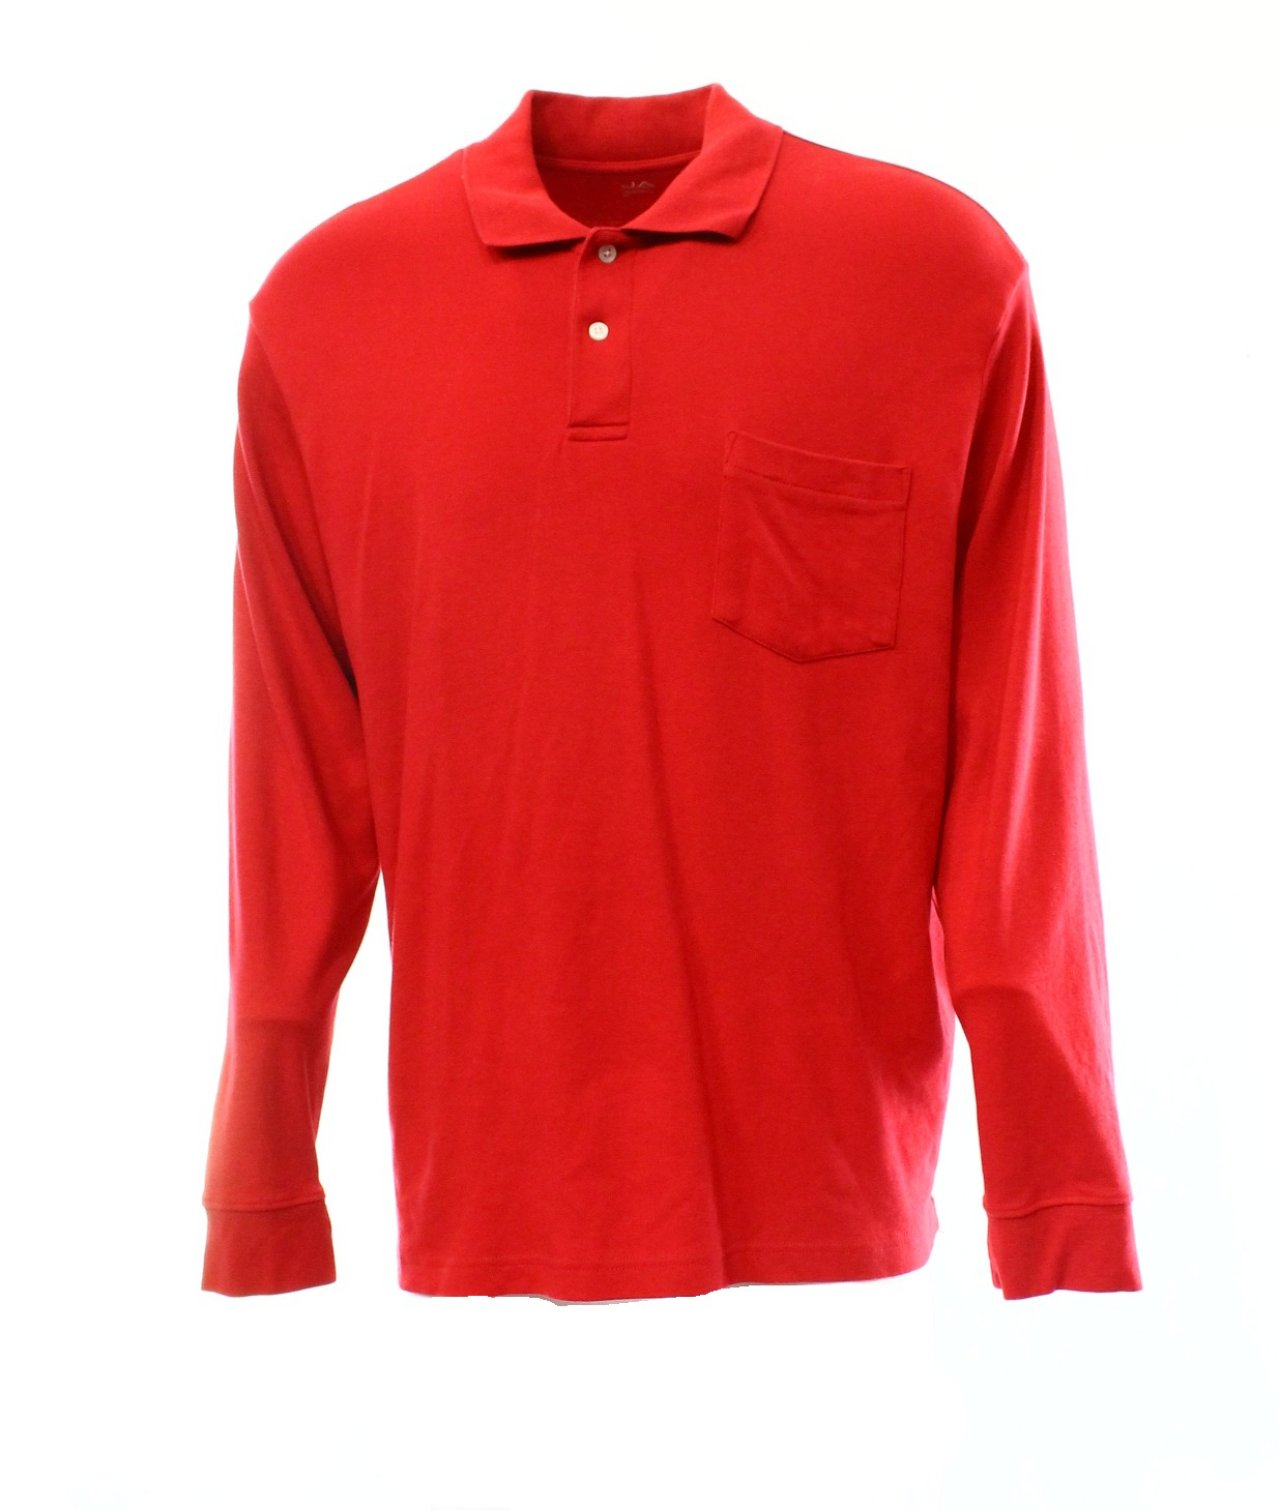 Mens polo by ralph lauren shirt l red pocket long sleeve for Men s cotton polo shirts with pocket